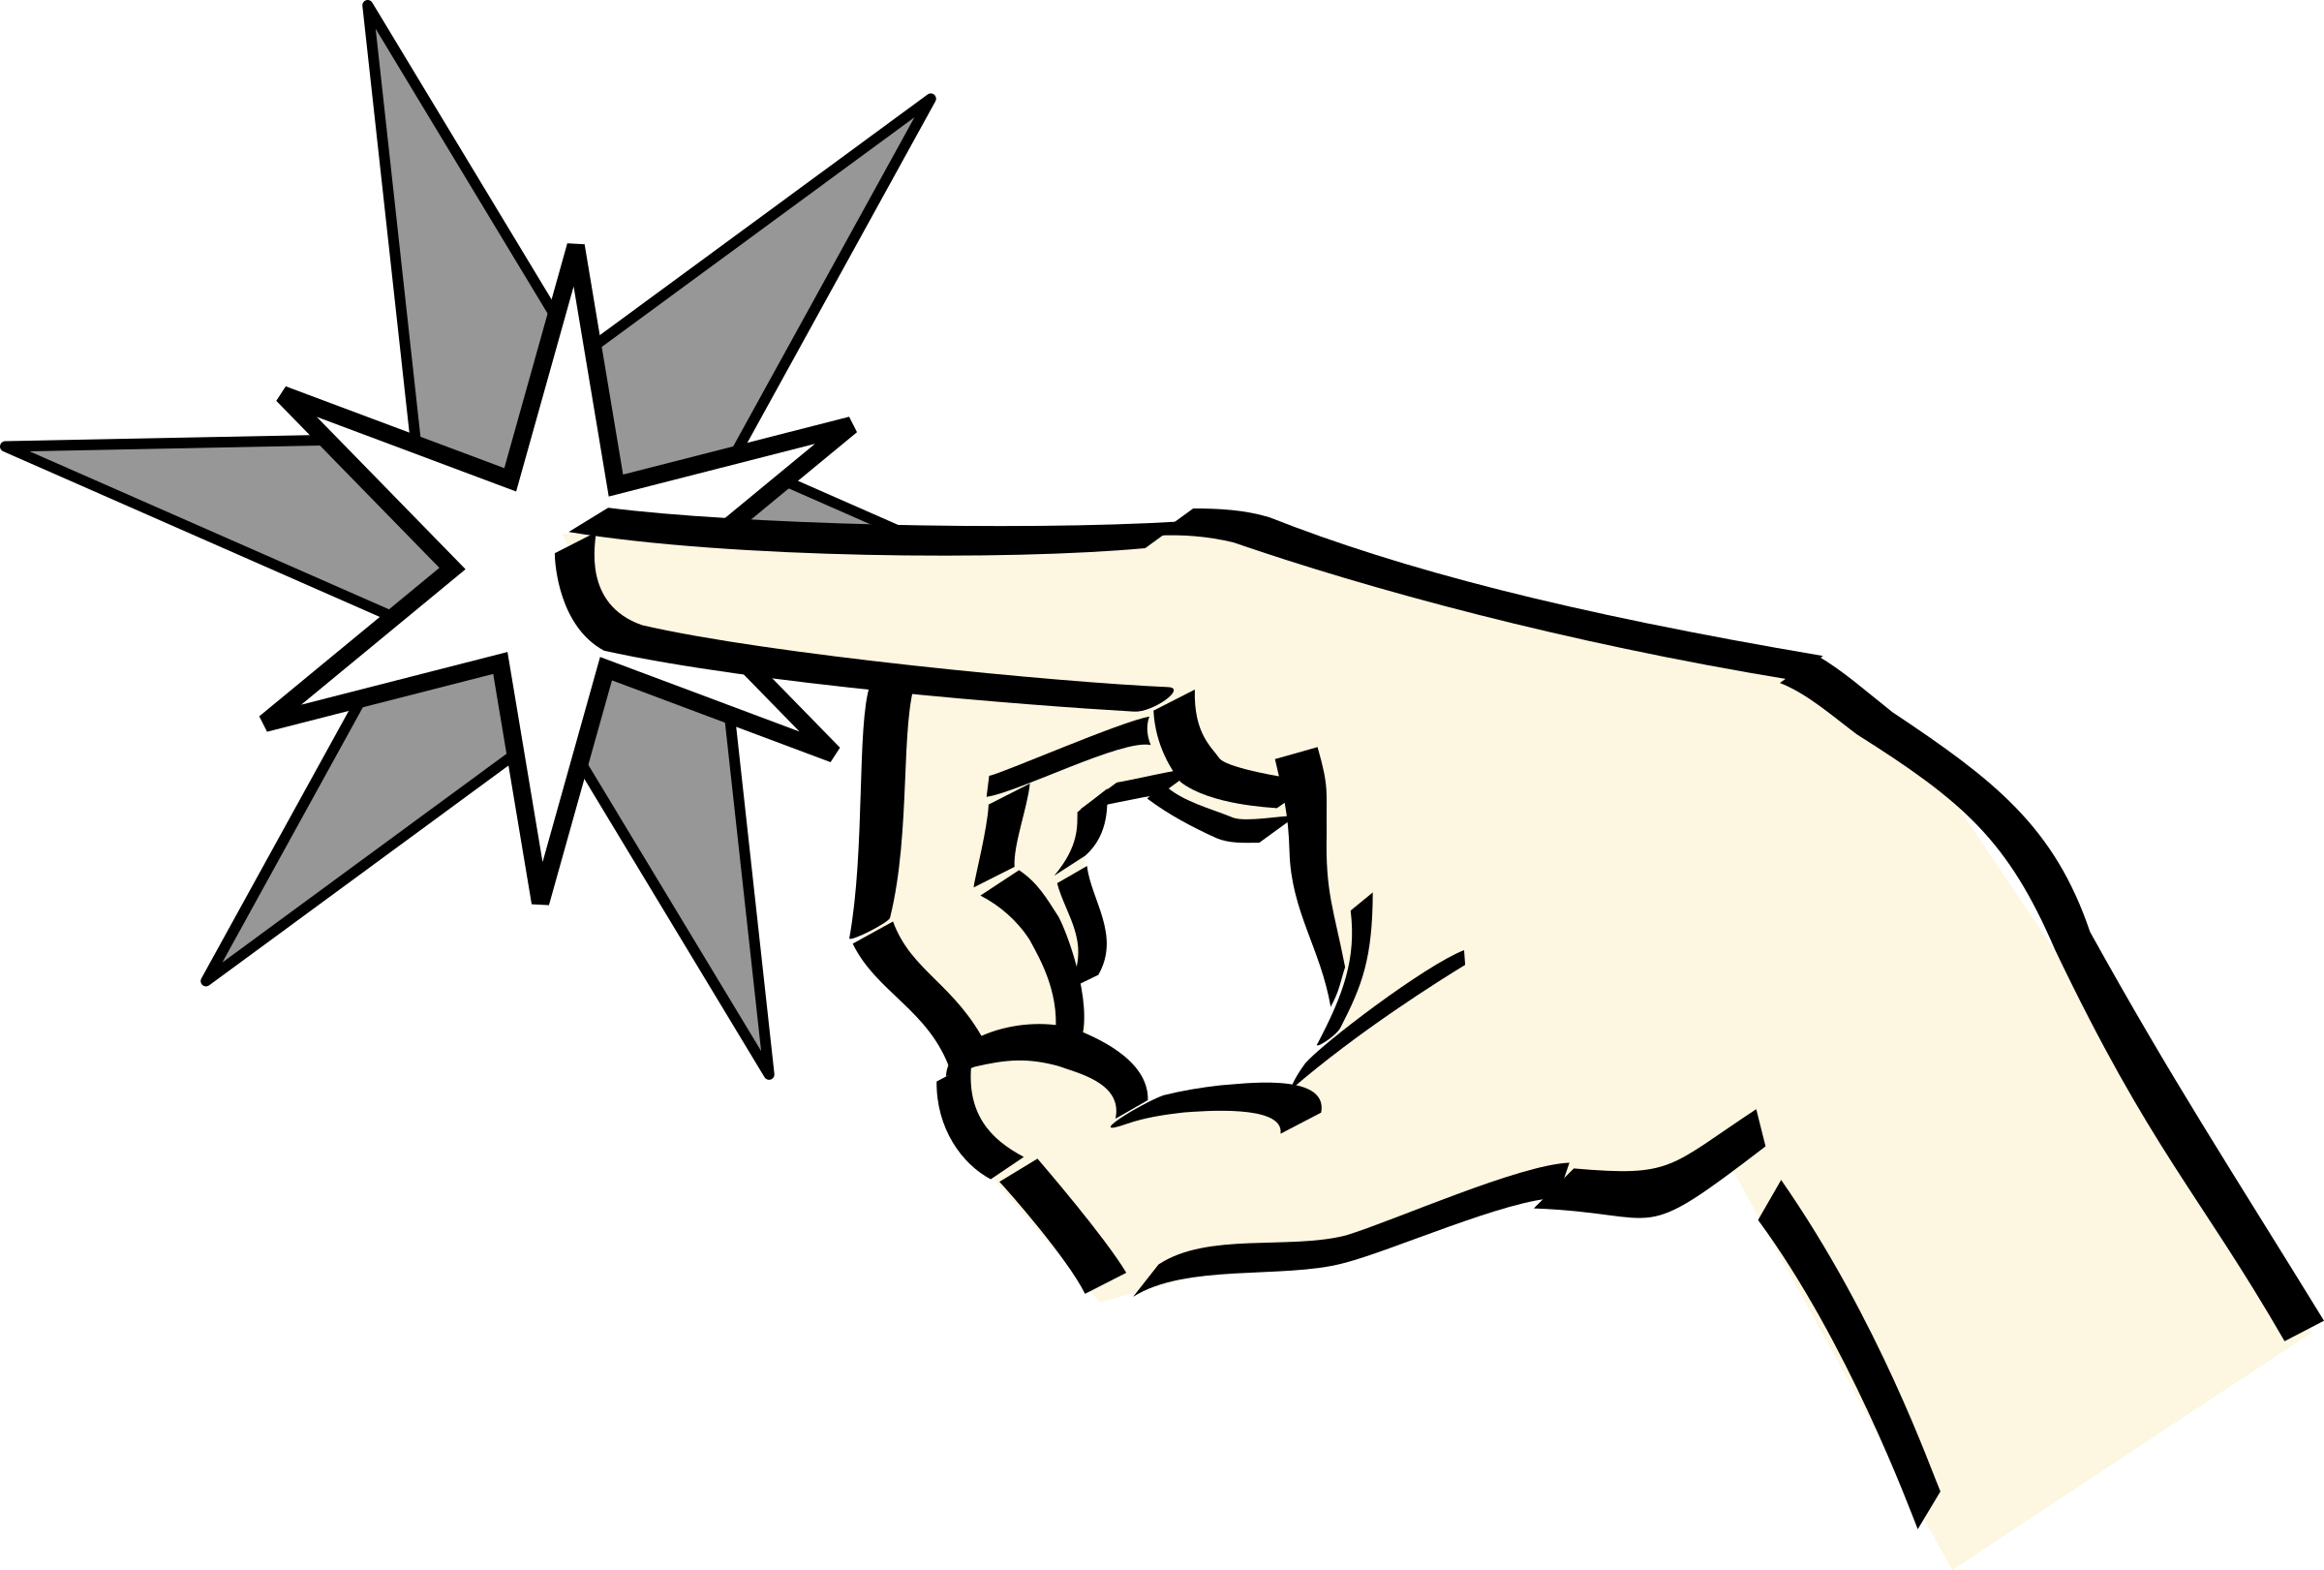 Fingers clipart left hand. Pointing at star big